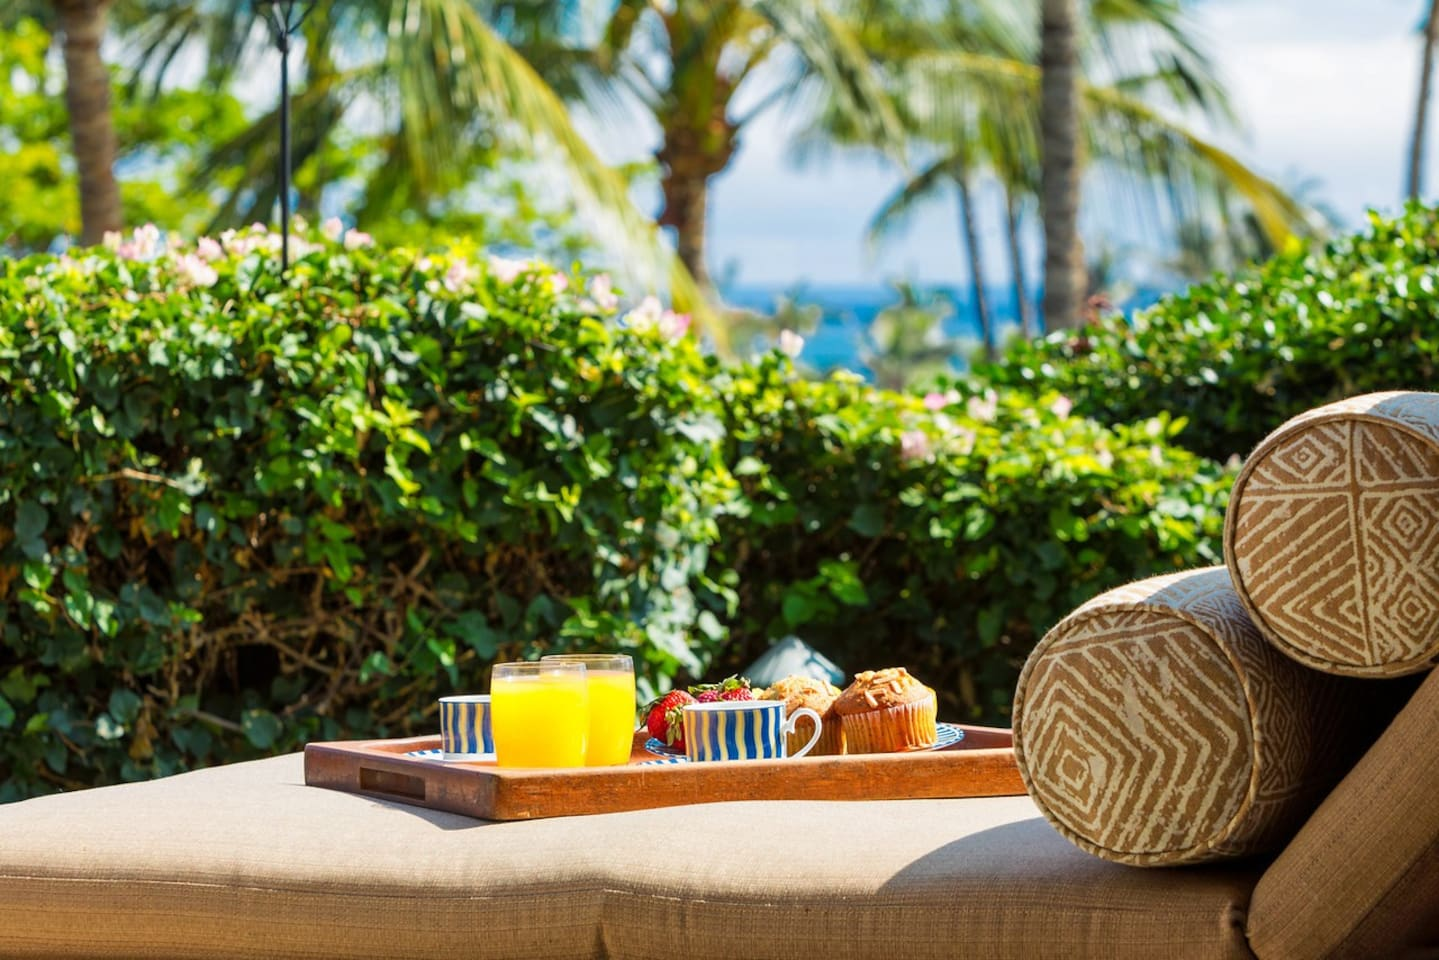 A peaceful lanai awaits with the soothing sounds of the ocean nearby....